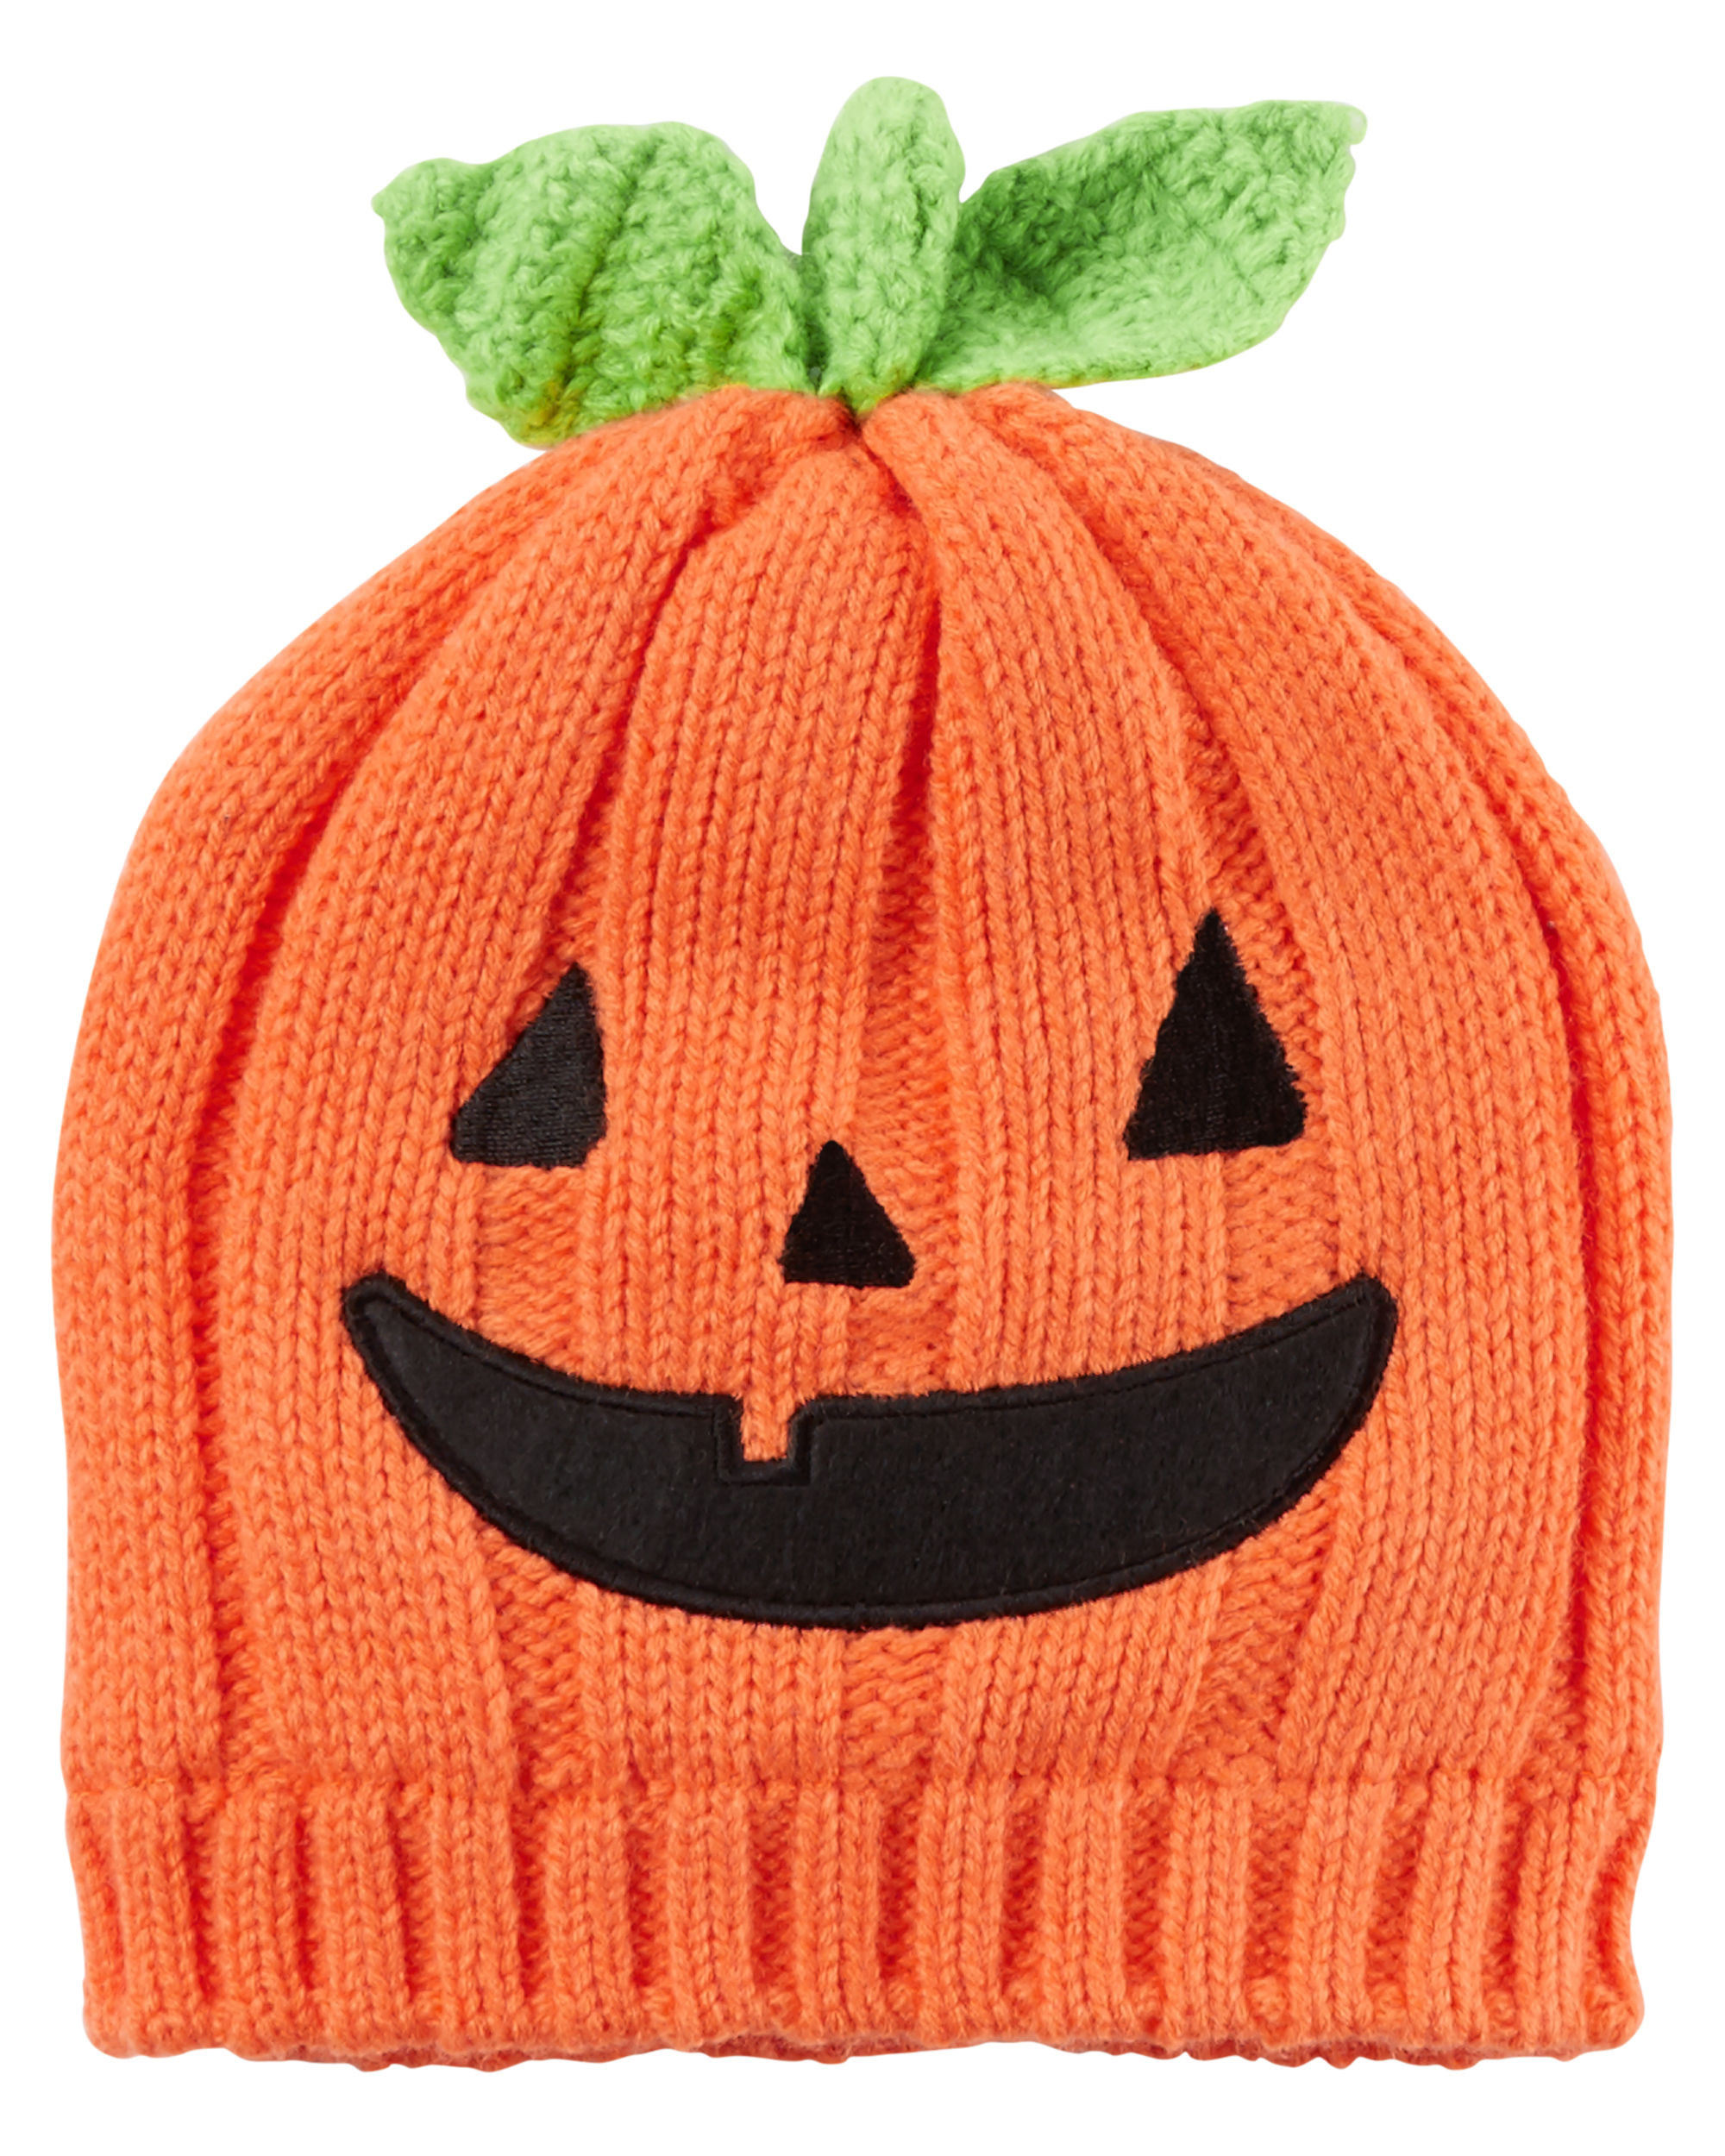 New Knit Pumpkin Hat Knitted Pumpkin Hat Of Marvelous 40 Ideas Knitted Pumpkin Hat